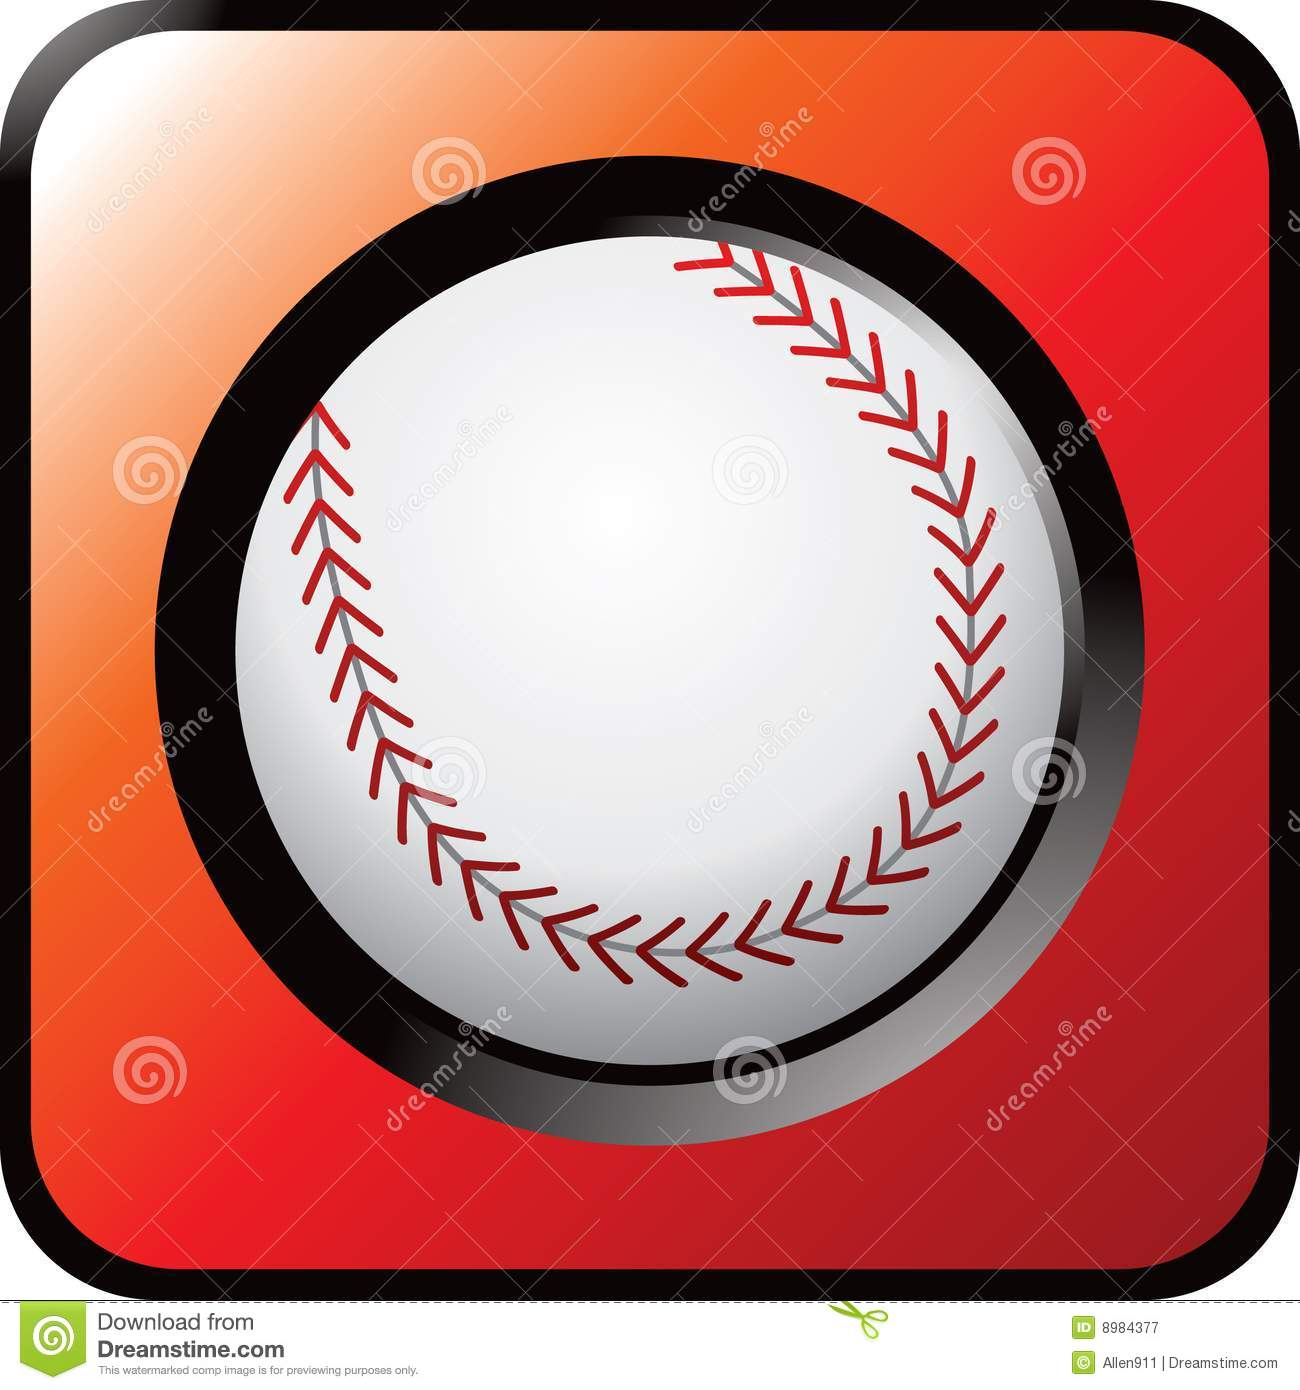 Baseball Icon Royalty Free Stock Photography   Image: 8984377 image #393